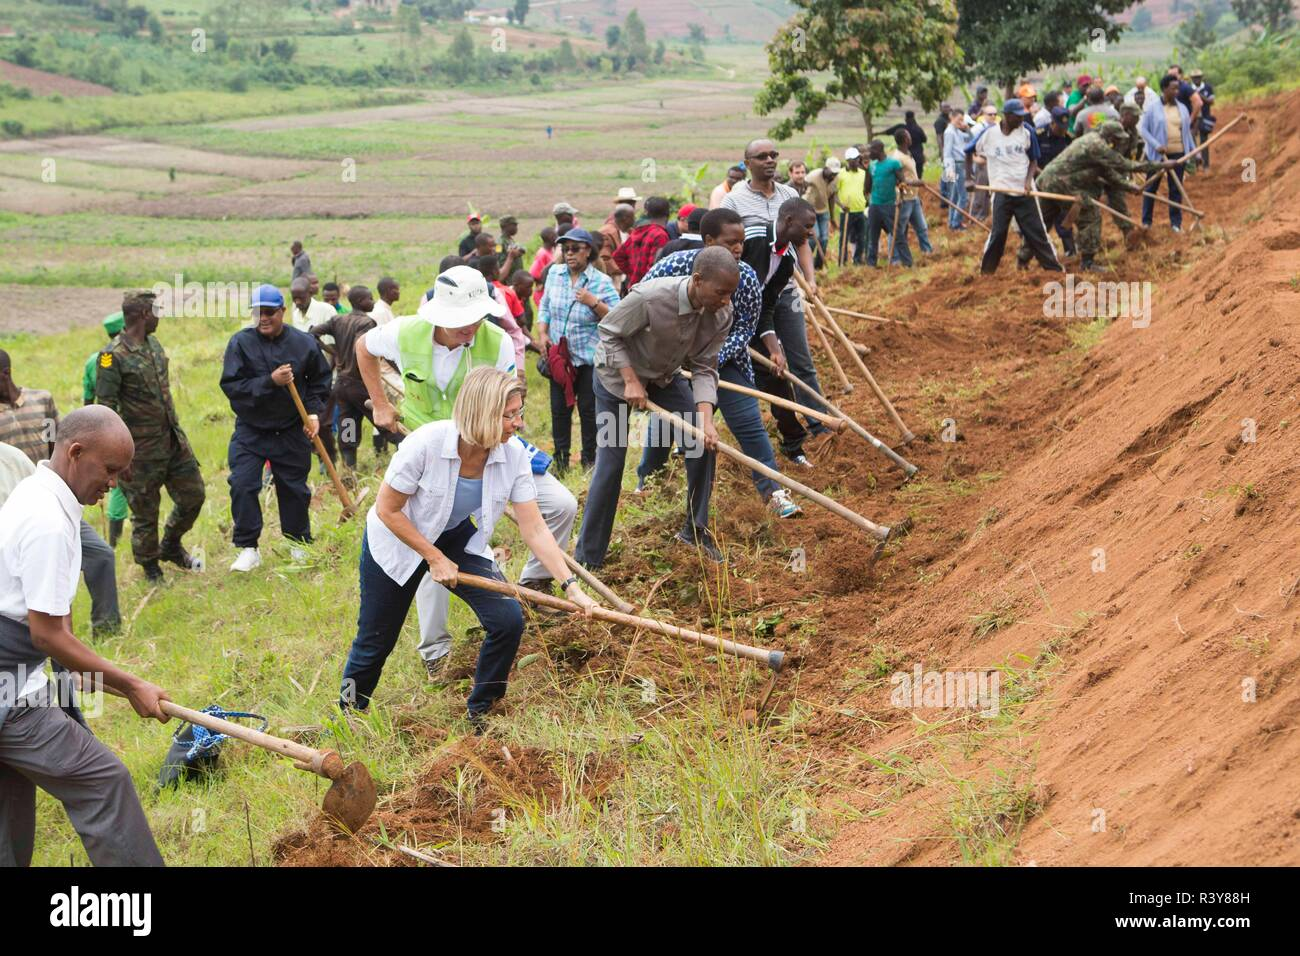 """(181124) -- KAMONYI (RWANDA), Nov. 24, 2018 (Xinhua) -- Foreign diplomats in Rwanda, Rwandan officials and residents participate in monthly community work, Umuganda, in Kamonyi district, central Rwanda, on Nov. 24, 2018. Diplomatic missions in Rwanda and Rwandan Ministry of Foreign Affairs and International Cooperation on Saturday organized a diplomatic Umuganda in Kamonyi. Taking root from Rwandan culture of self-help and cooperation, Umuganda, held on the last Saturday of the month, can be translated as """"coming together in common purpose to achieve an outcome,"""" according to Rwanda Governance Stock Photo"""